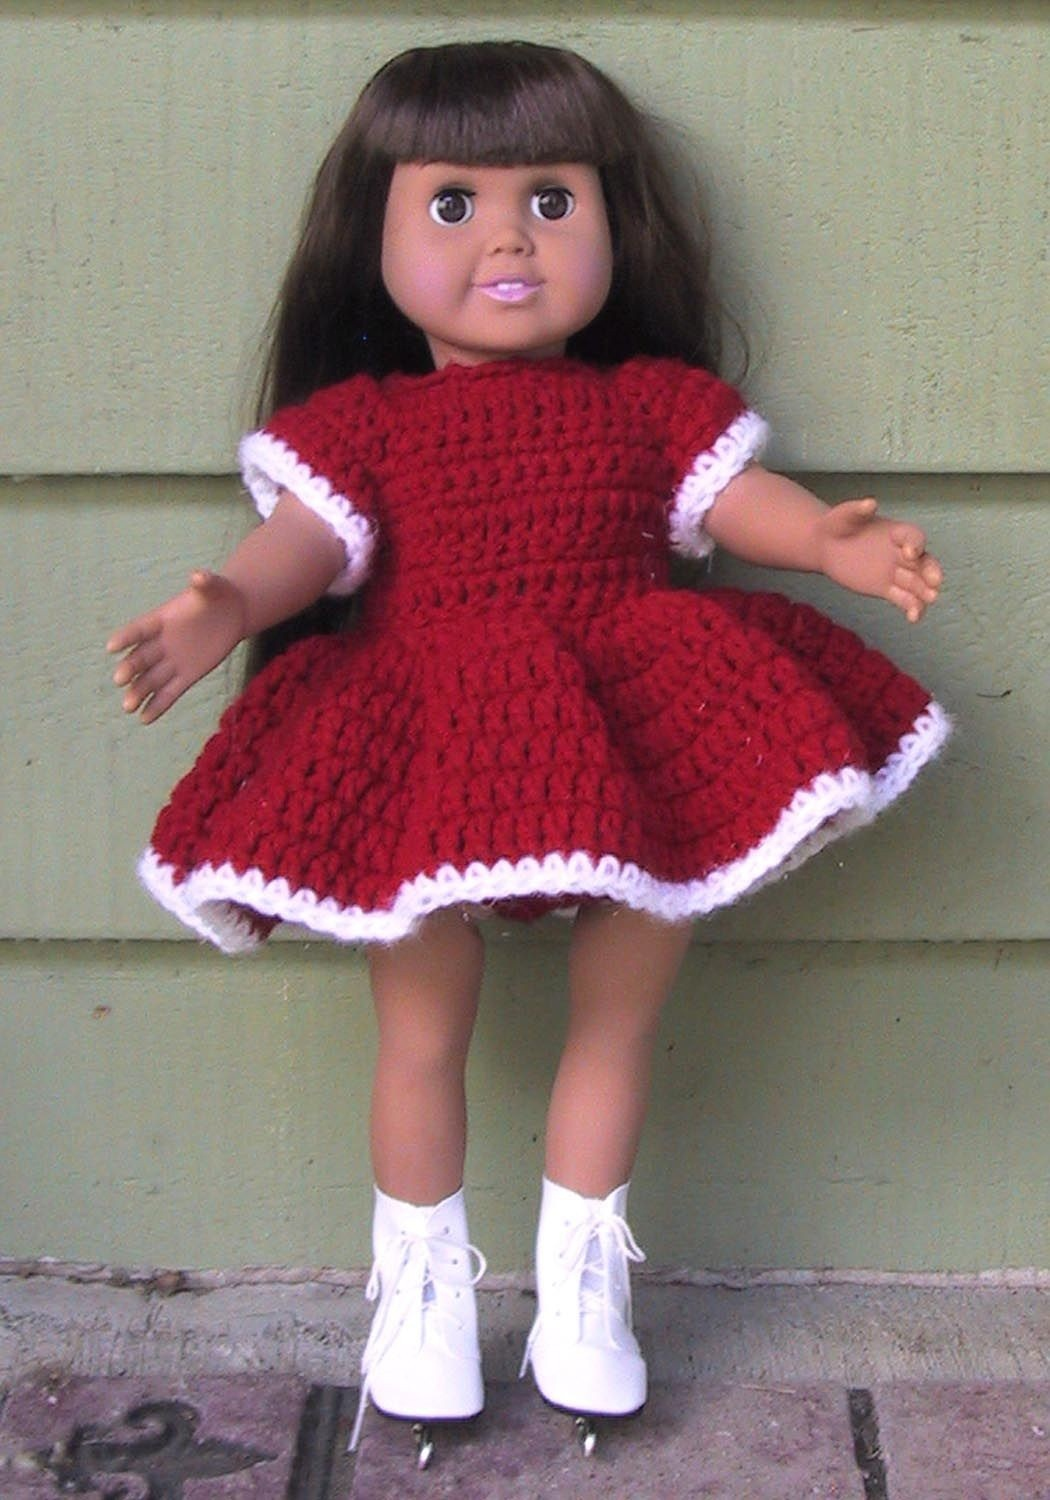 18 Doll Clothes Patterns Free Lovely American Girl Dolls And 18 Inch - Free Printable Crochet Doll Clothes Patterns For 18 Inch Dolls